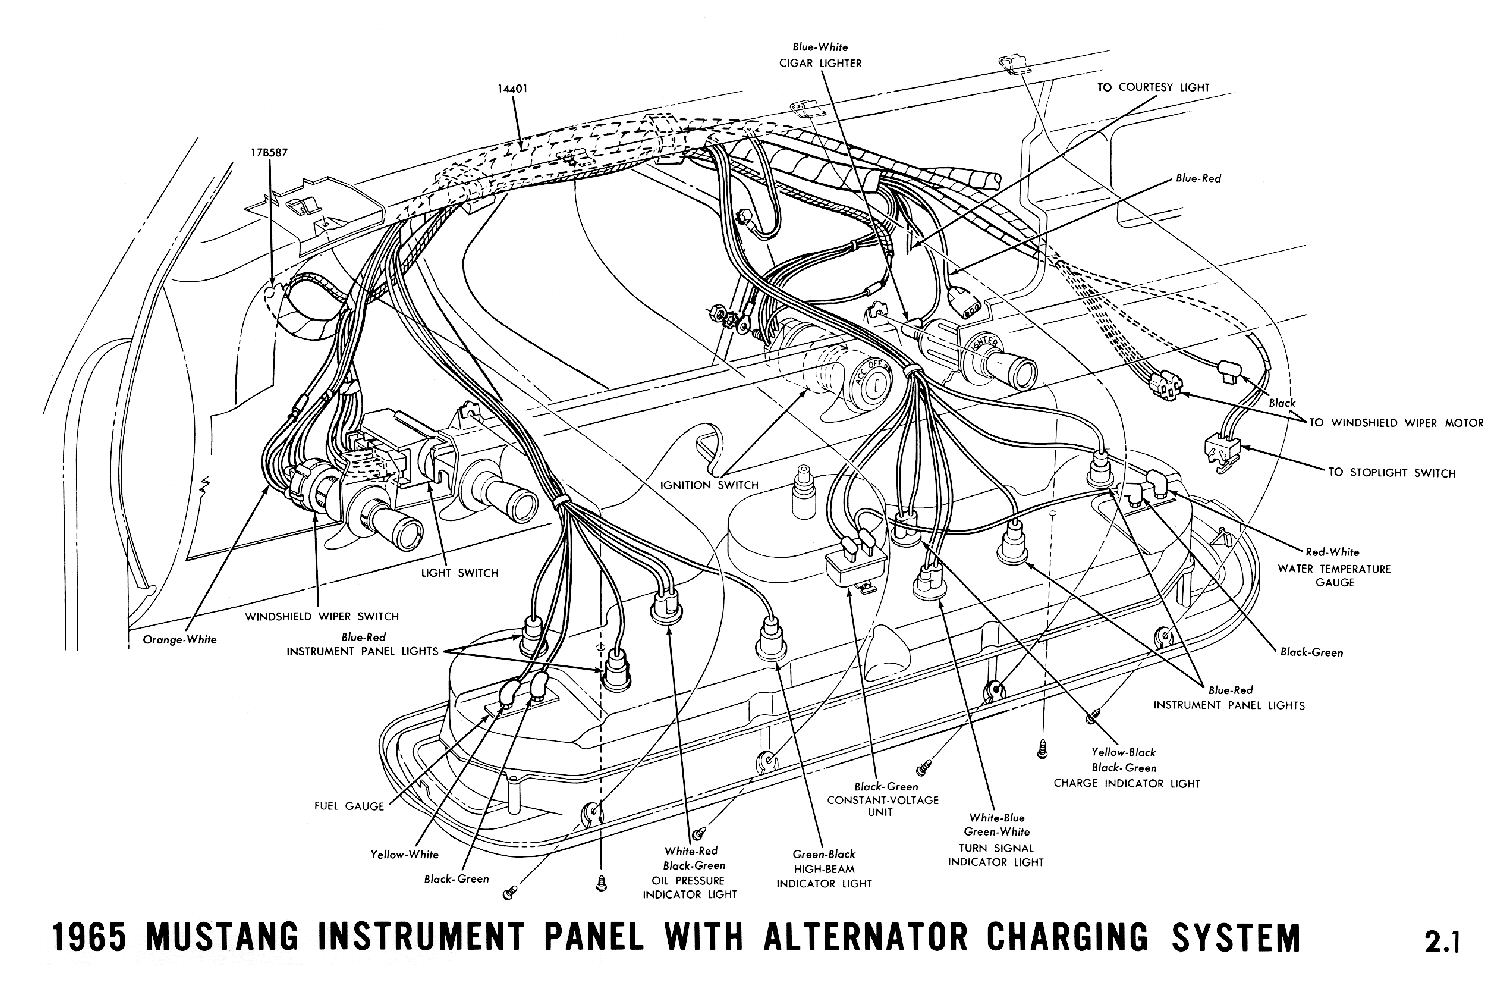 1965a 1965 mustang wiring diagrams average joe restoration highway 22 wiring diagram at crackthecode.co